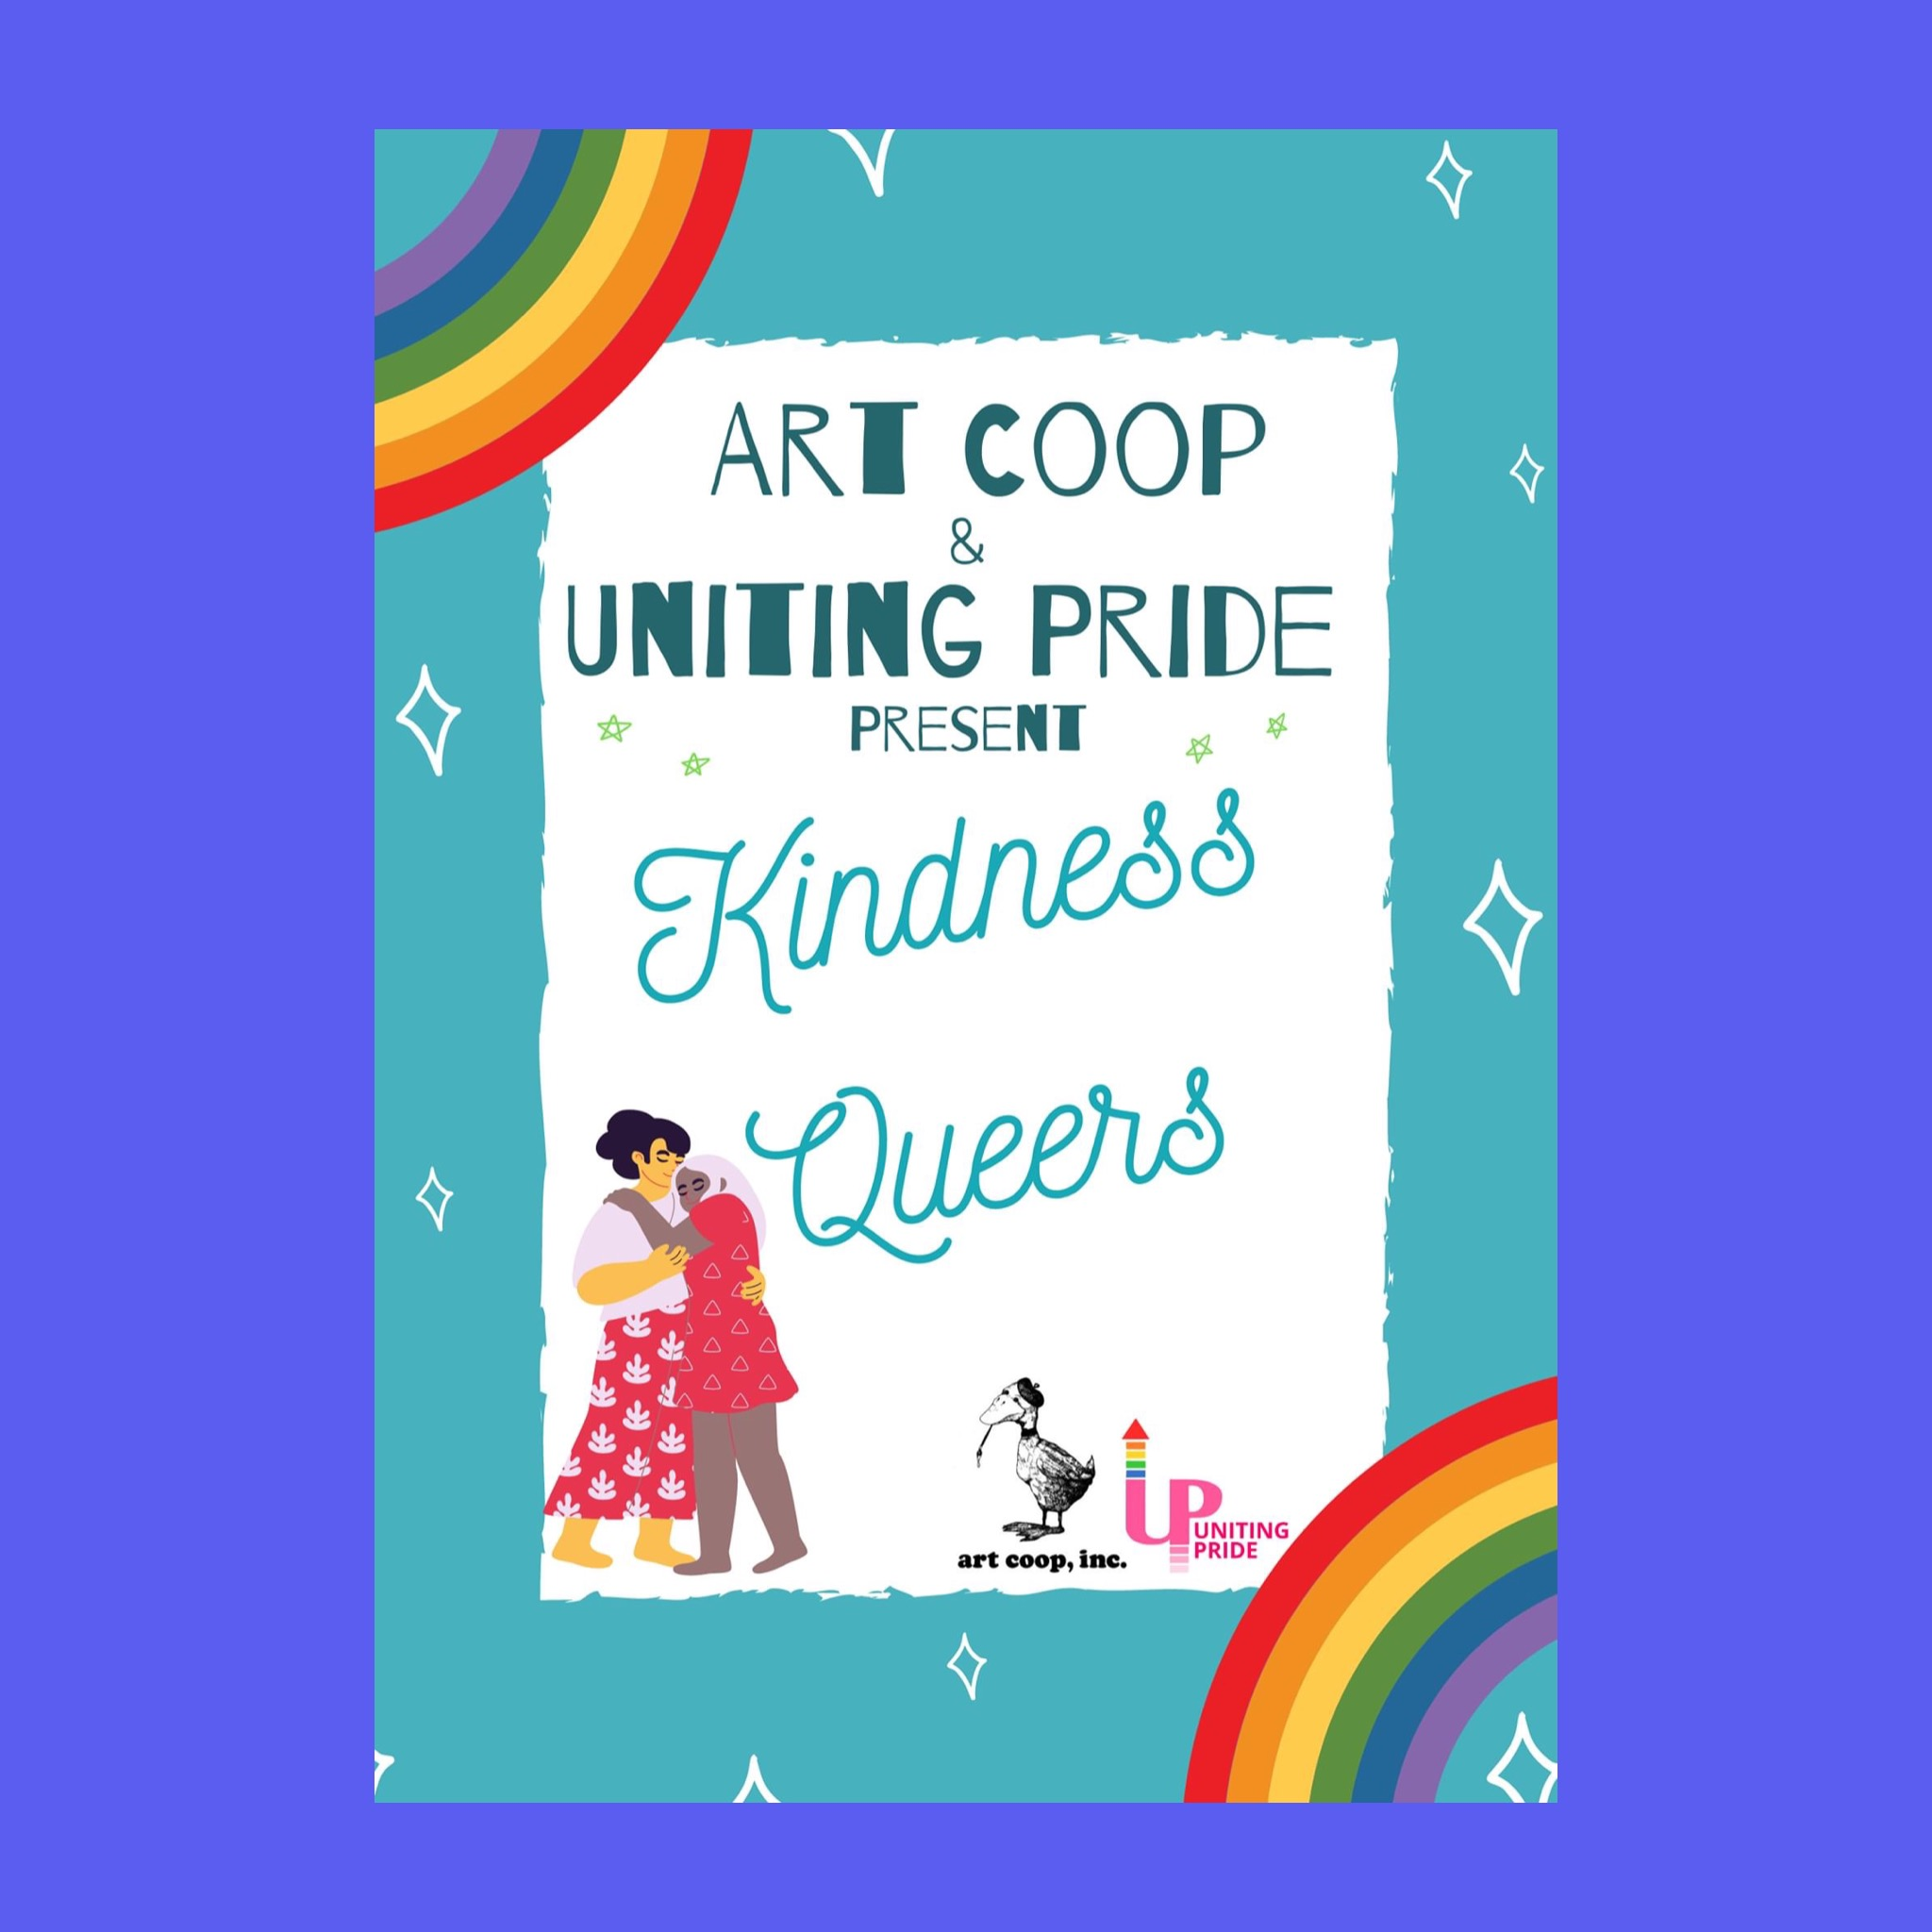 Kindness Queers Kit Donation!